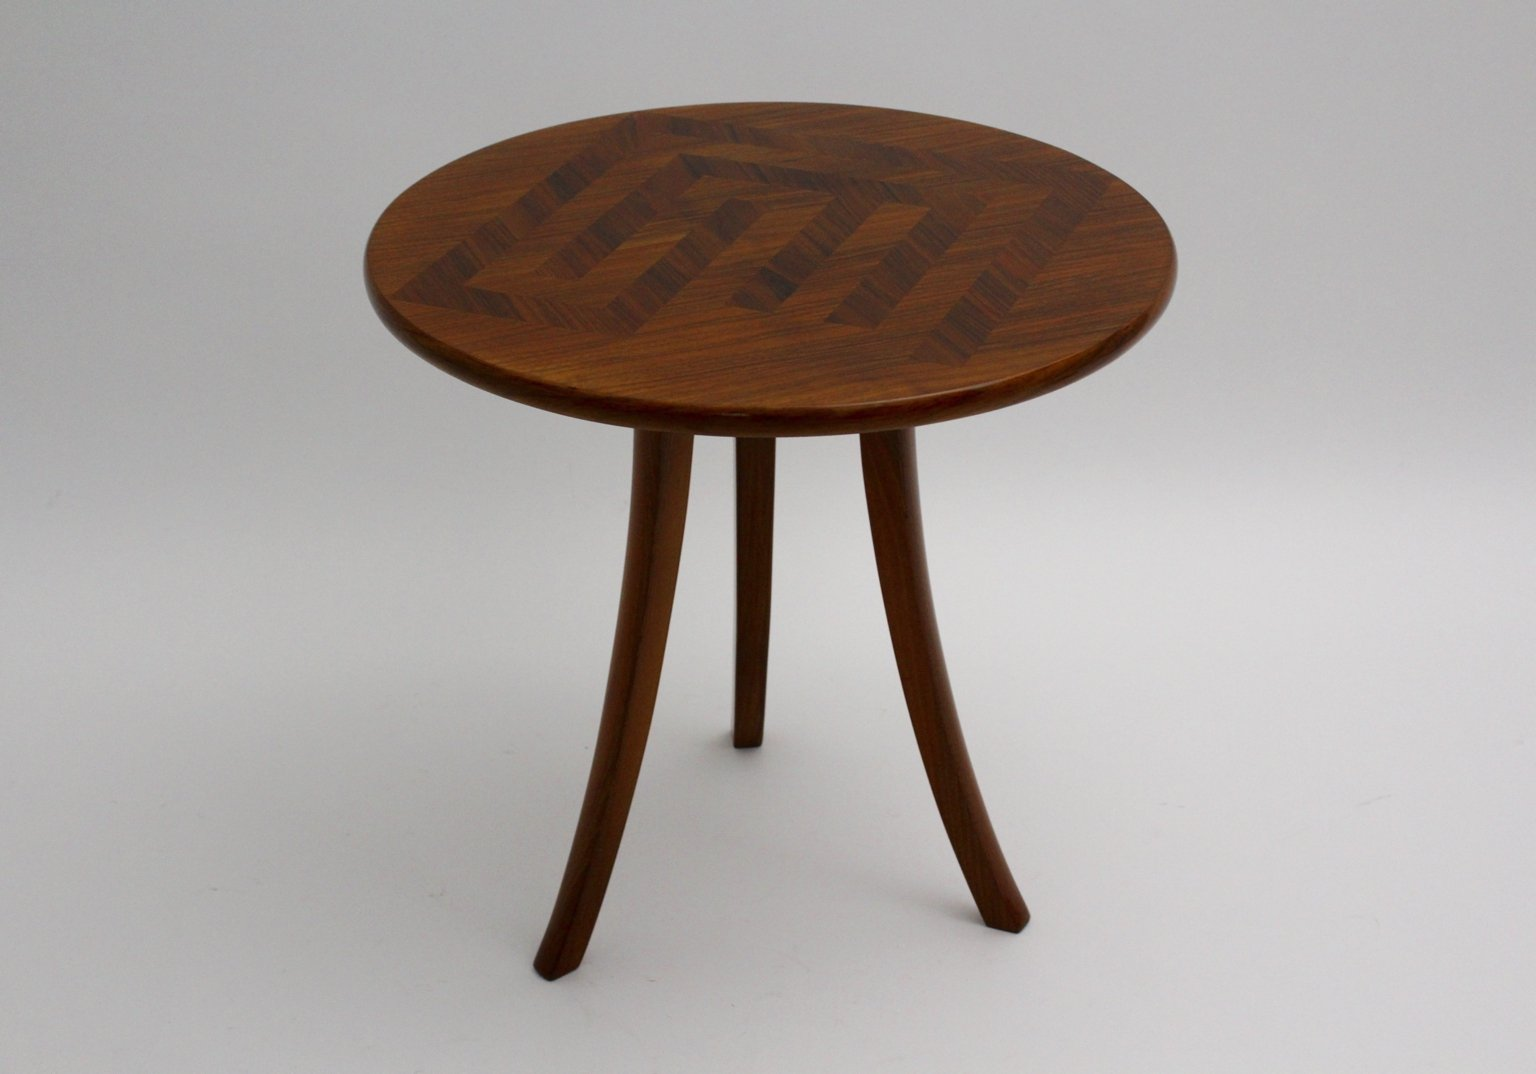 3 Legged Art Deco Coffee Table By Josef Frank For Haus Garten 1920s For Sale At Pamono